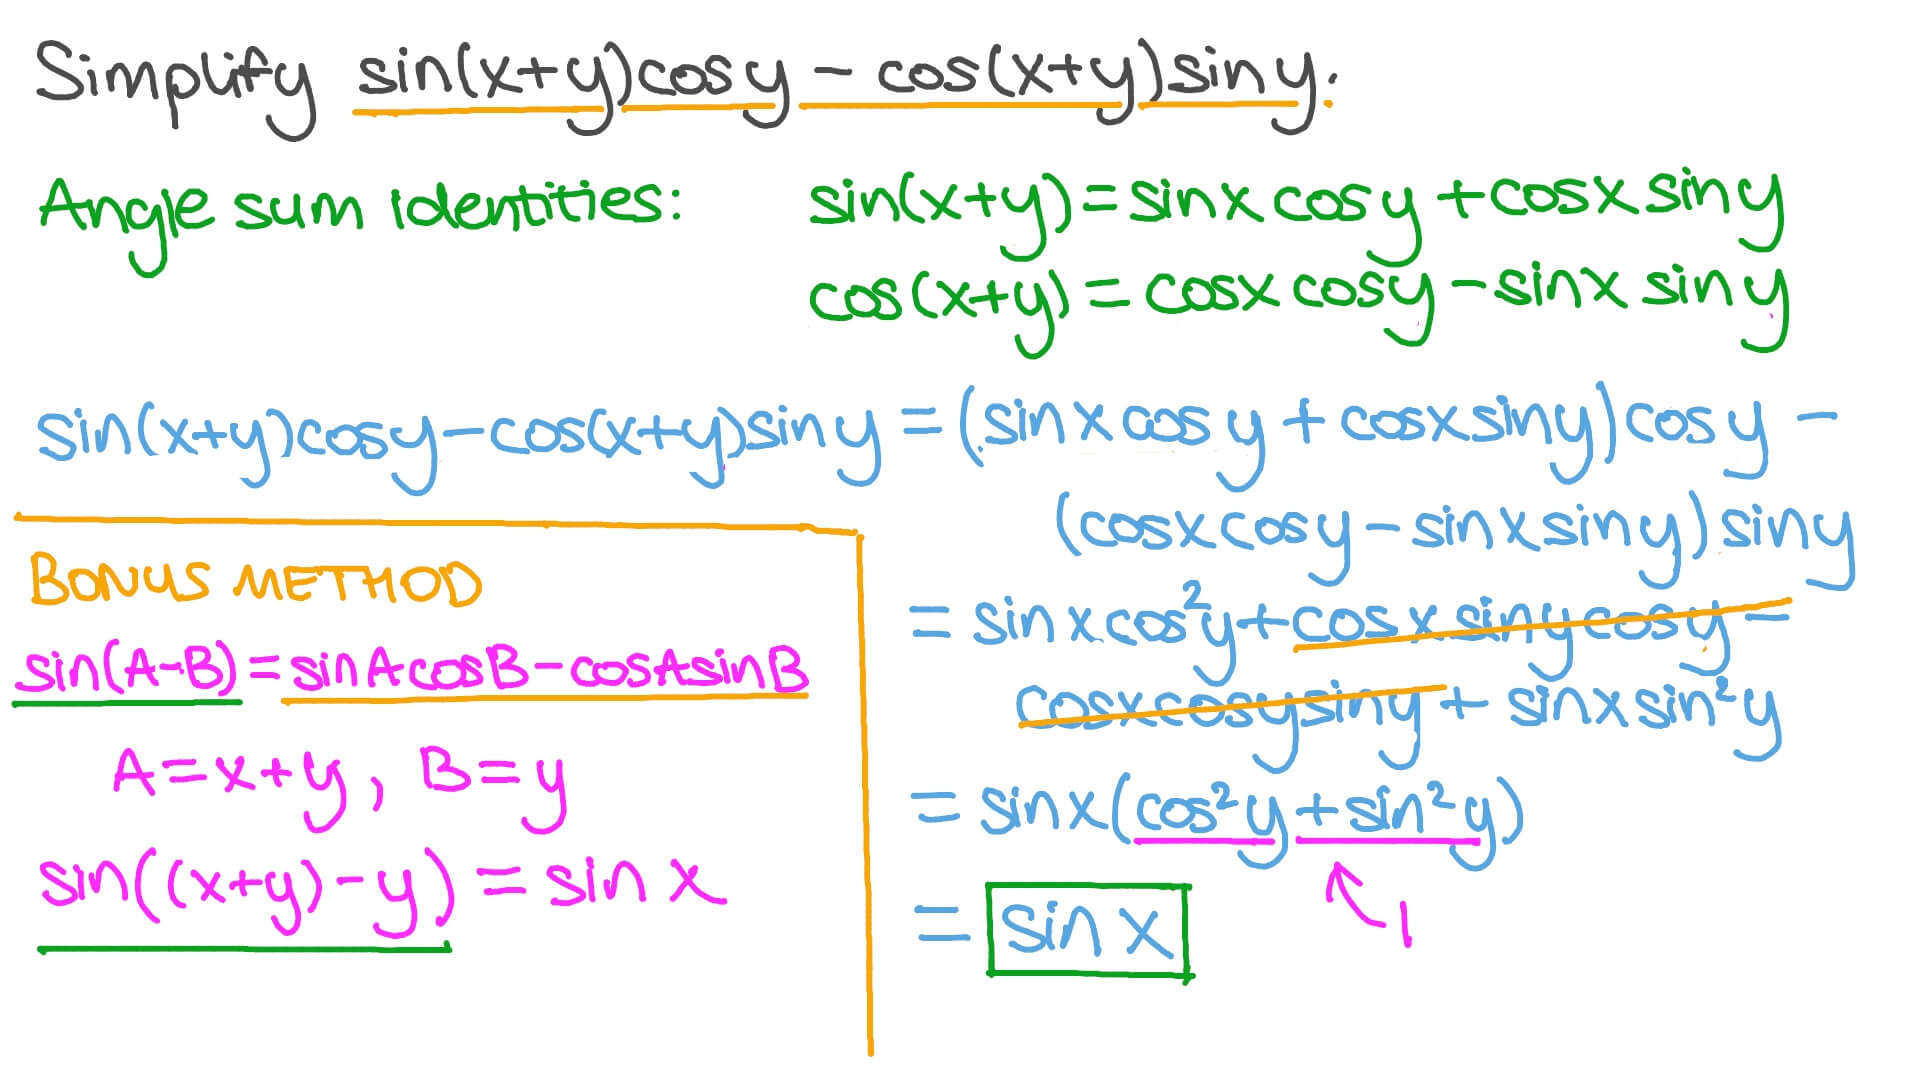 Video Simplifying Trigonometric Expressions Using Double Angle